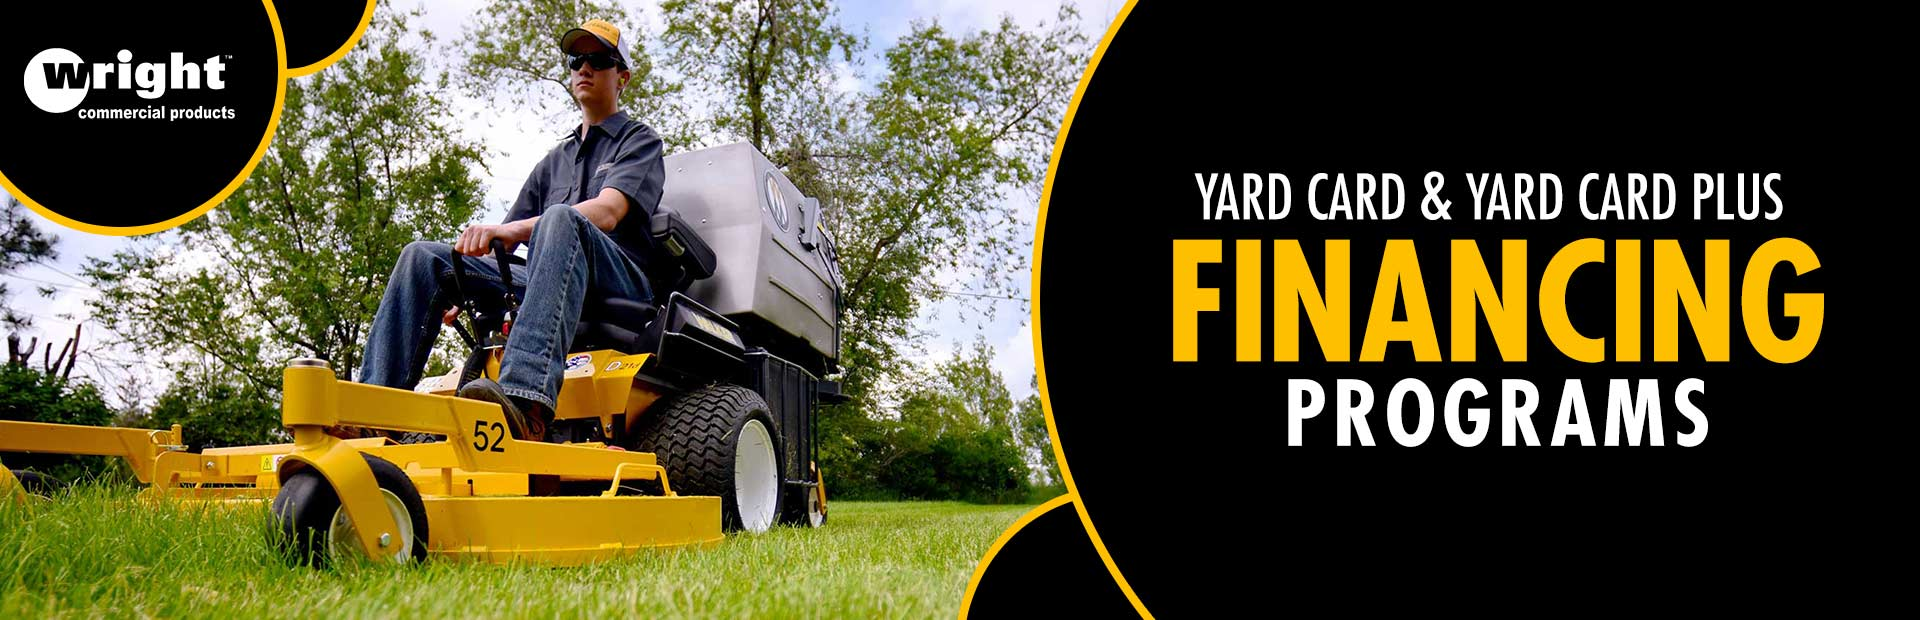 Wright: Yard Card and Yard Card Plus Financing Programs